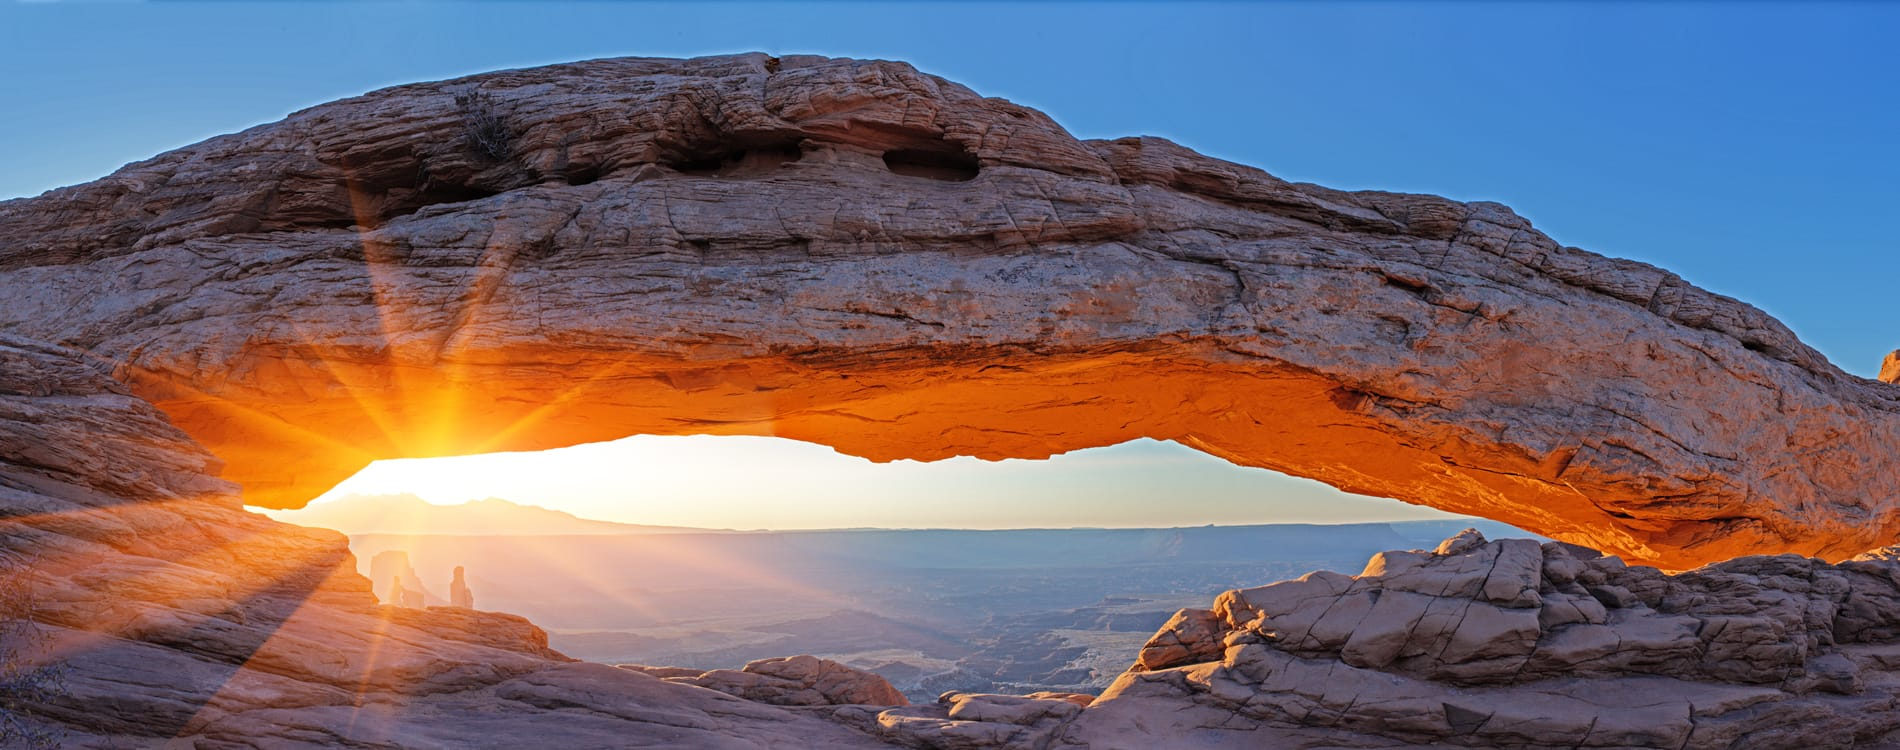 Moab, UT - Mesa Arch in Canyonlands National Park